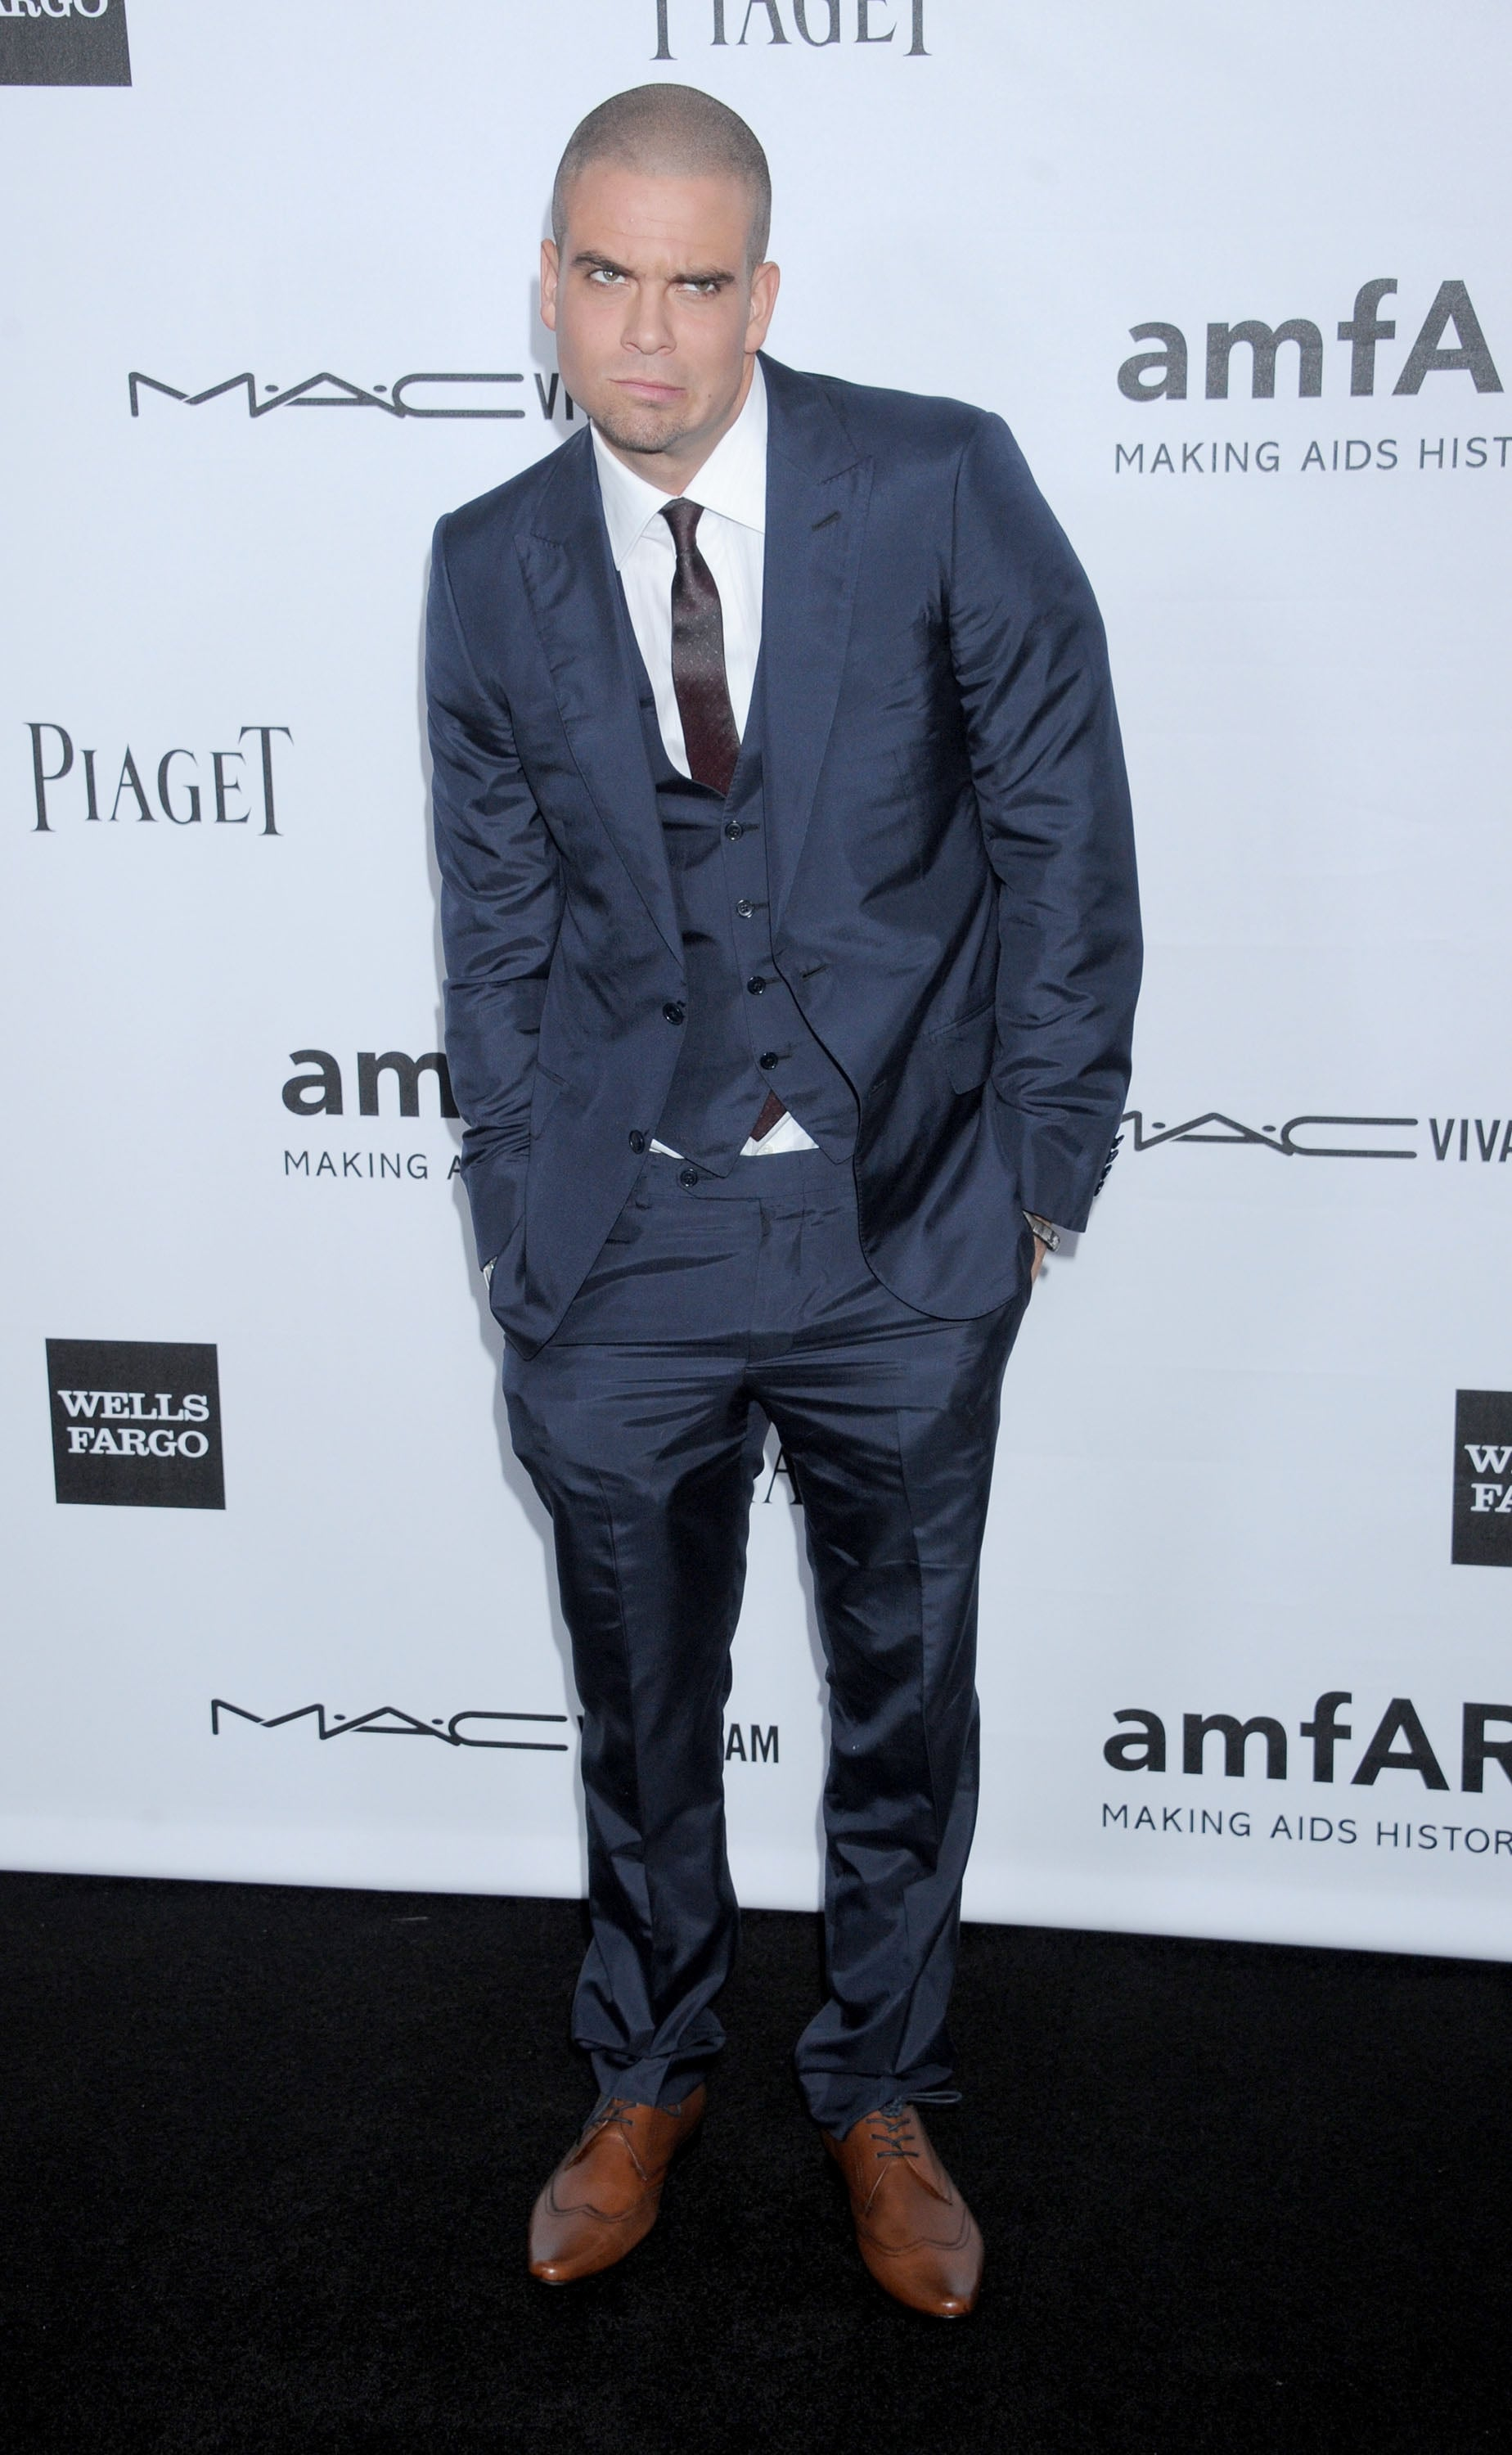 Mark Salling attended the amfAR 3rd Annual Inspiration Gala in LA.